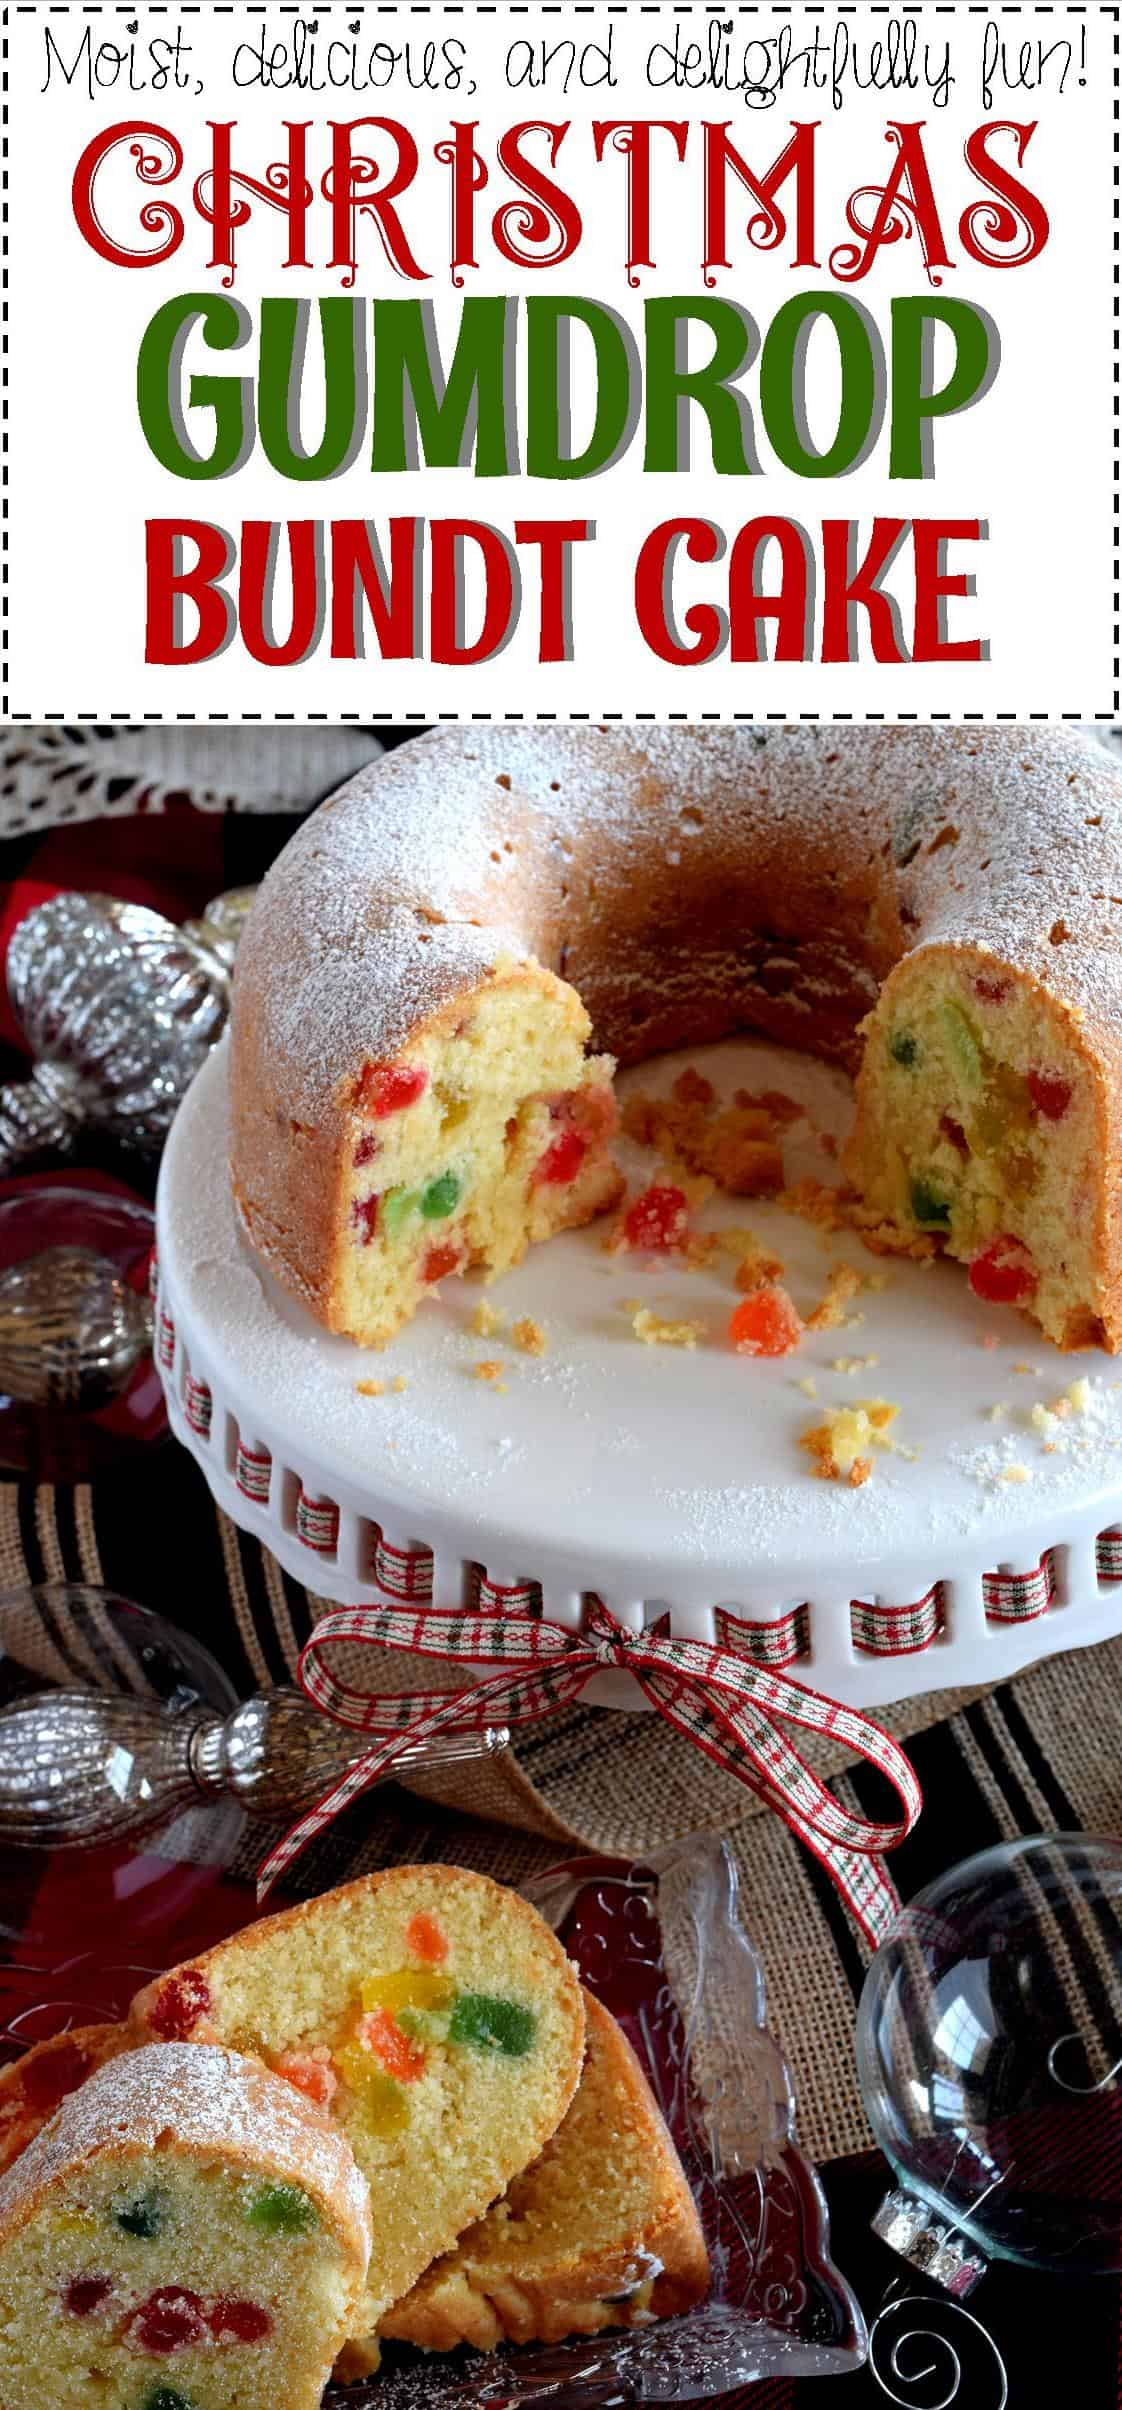 gumdrop cake has to be one of the most recognizable traditional newfoundland cakes and even though its probably most popular at christmastime